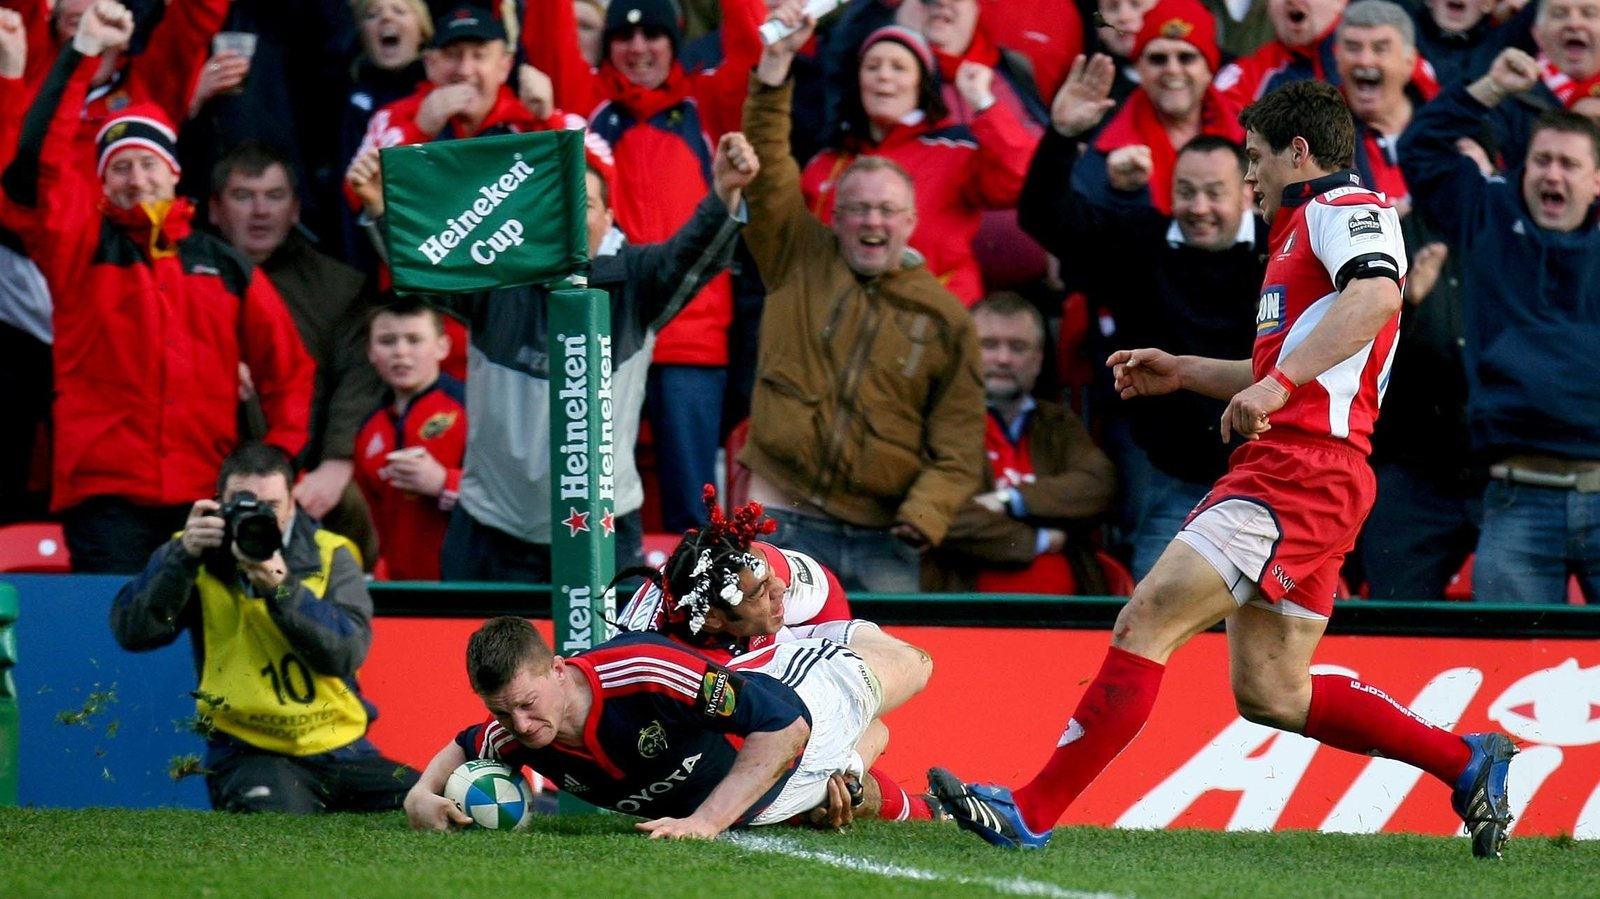 Image - Hurley gets over the line against Gloucester, but the 'try' was ruled out by the TMO